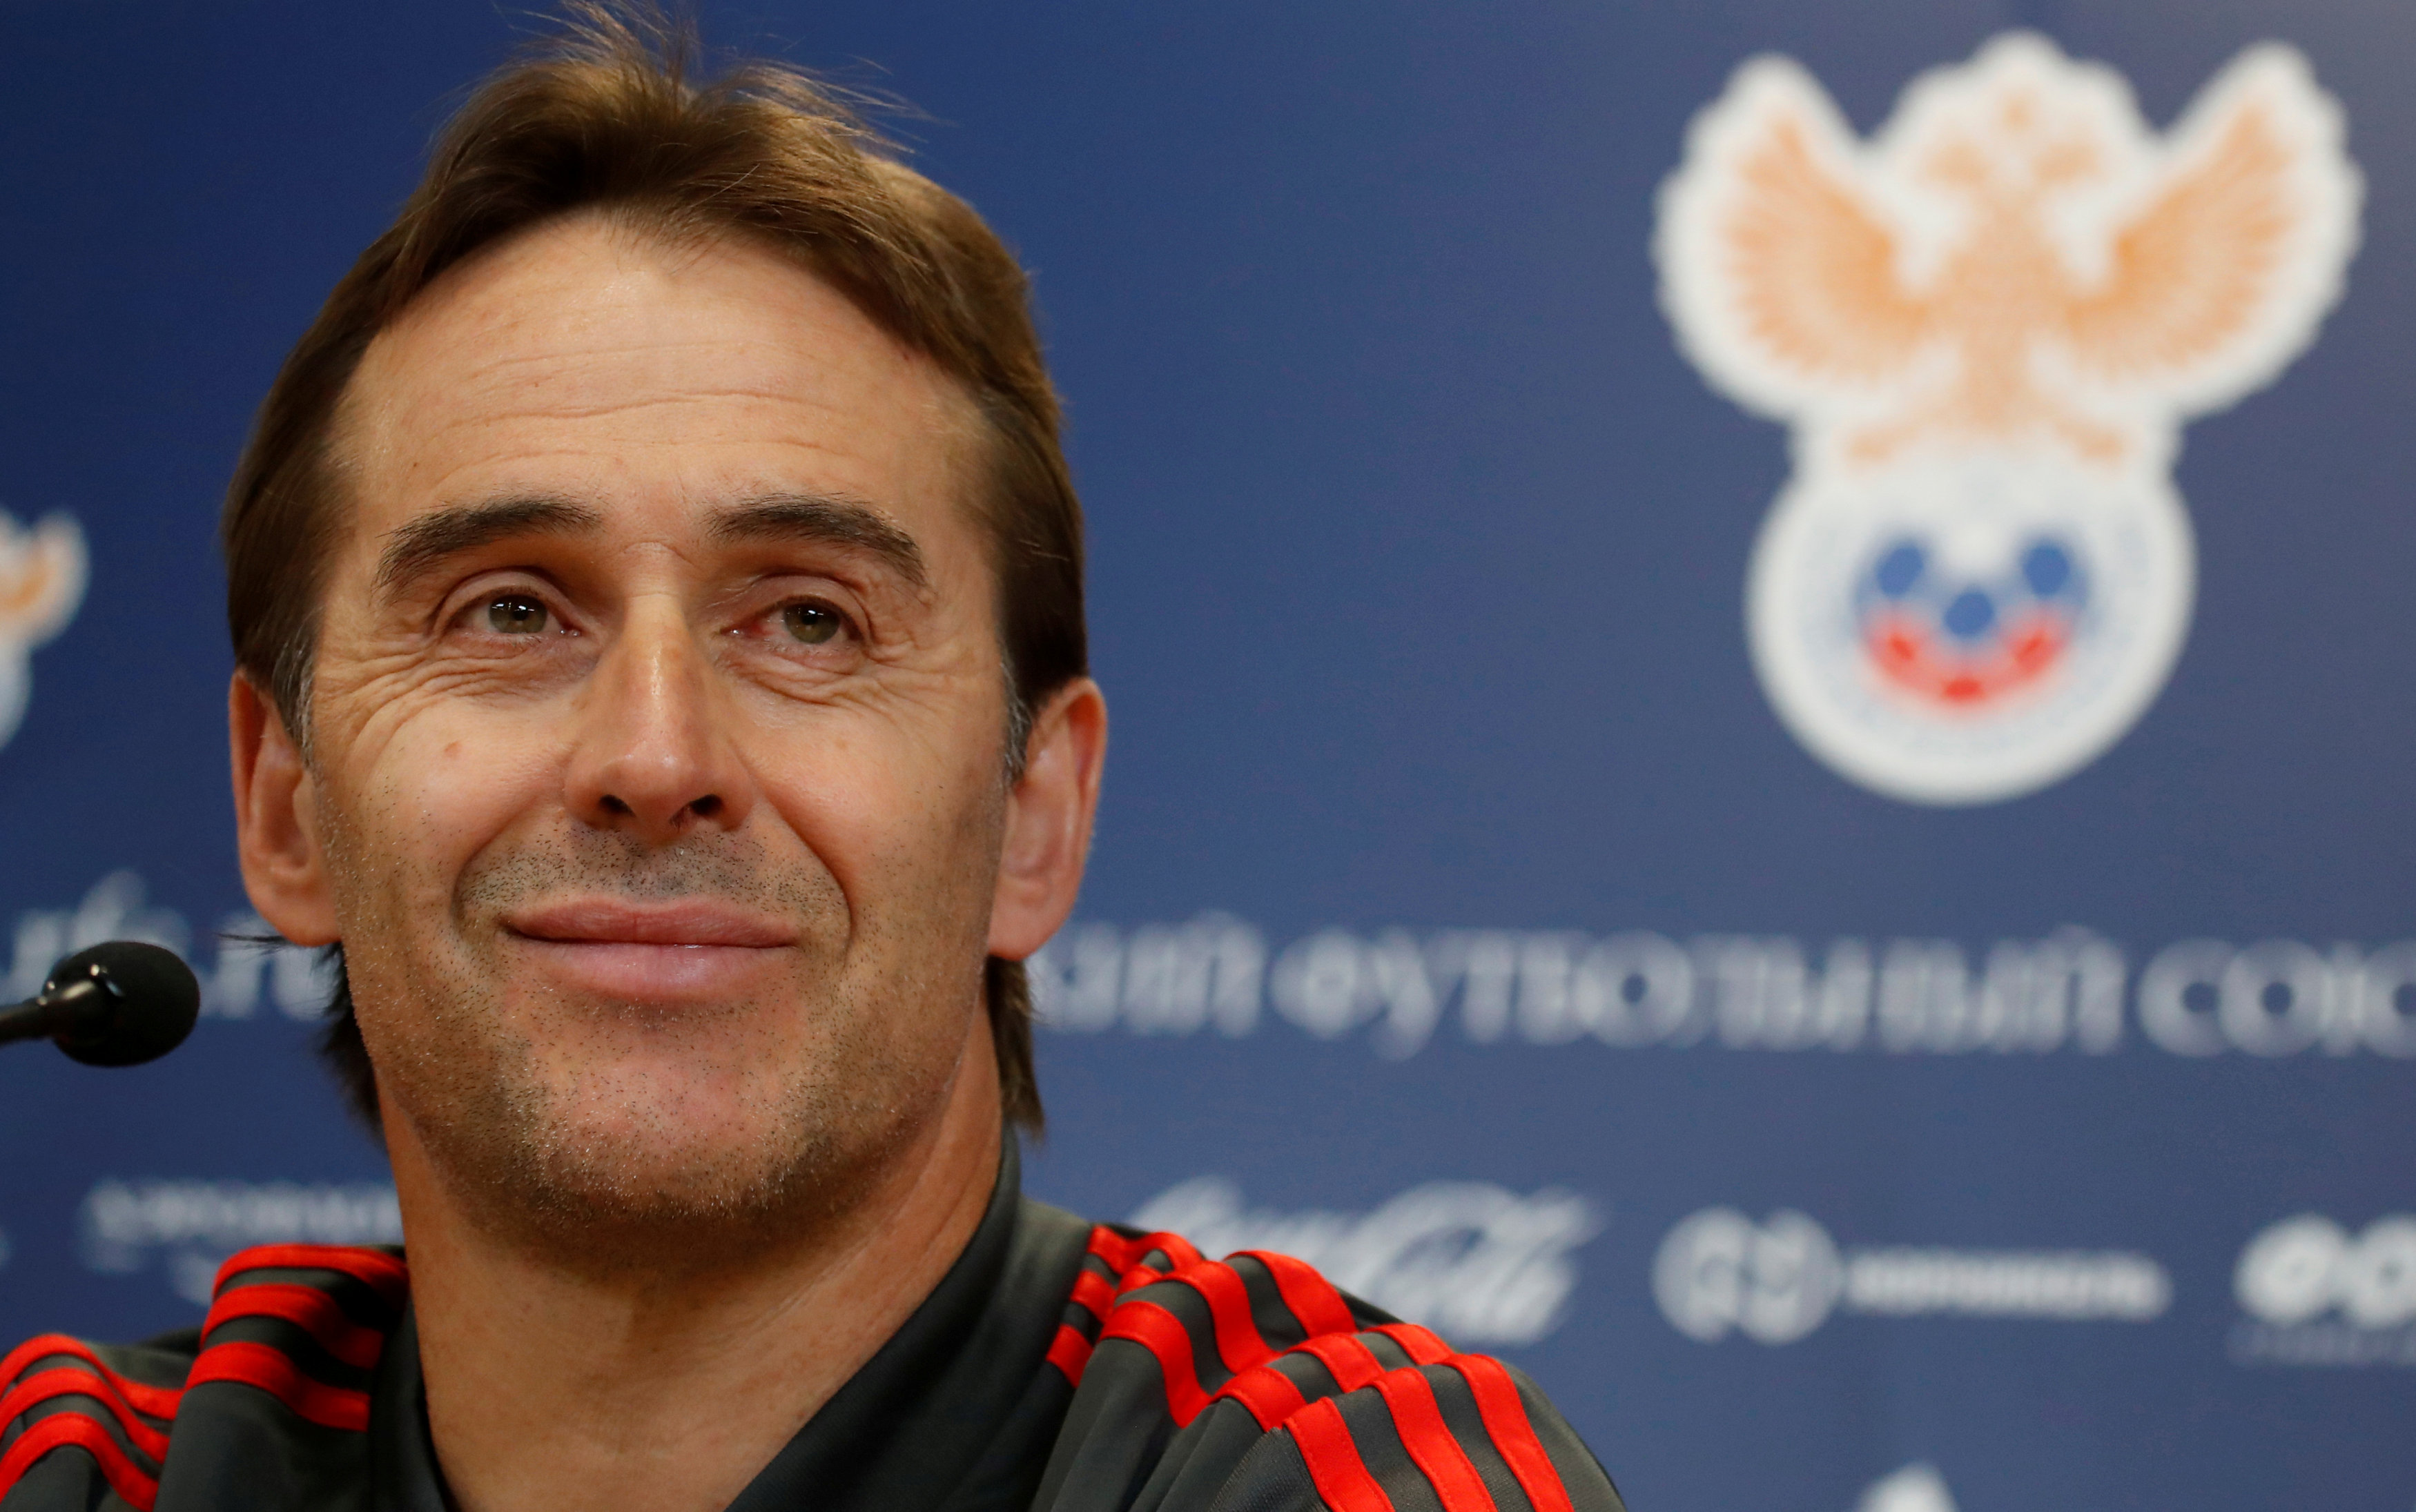 Lopetegui fired by Spain two days before World Cup debut